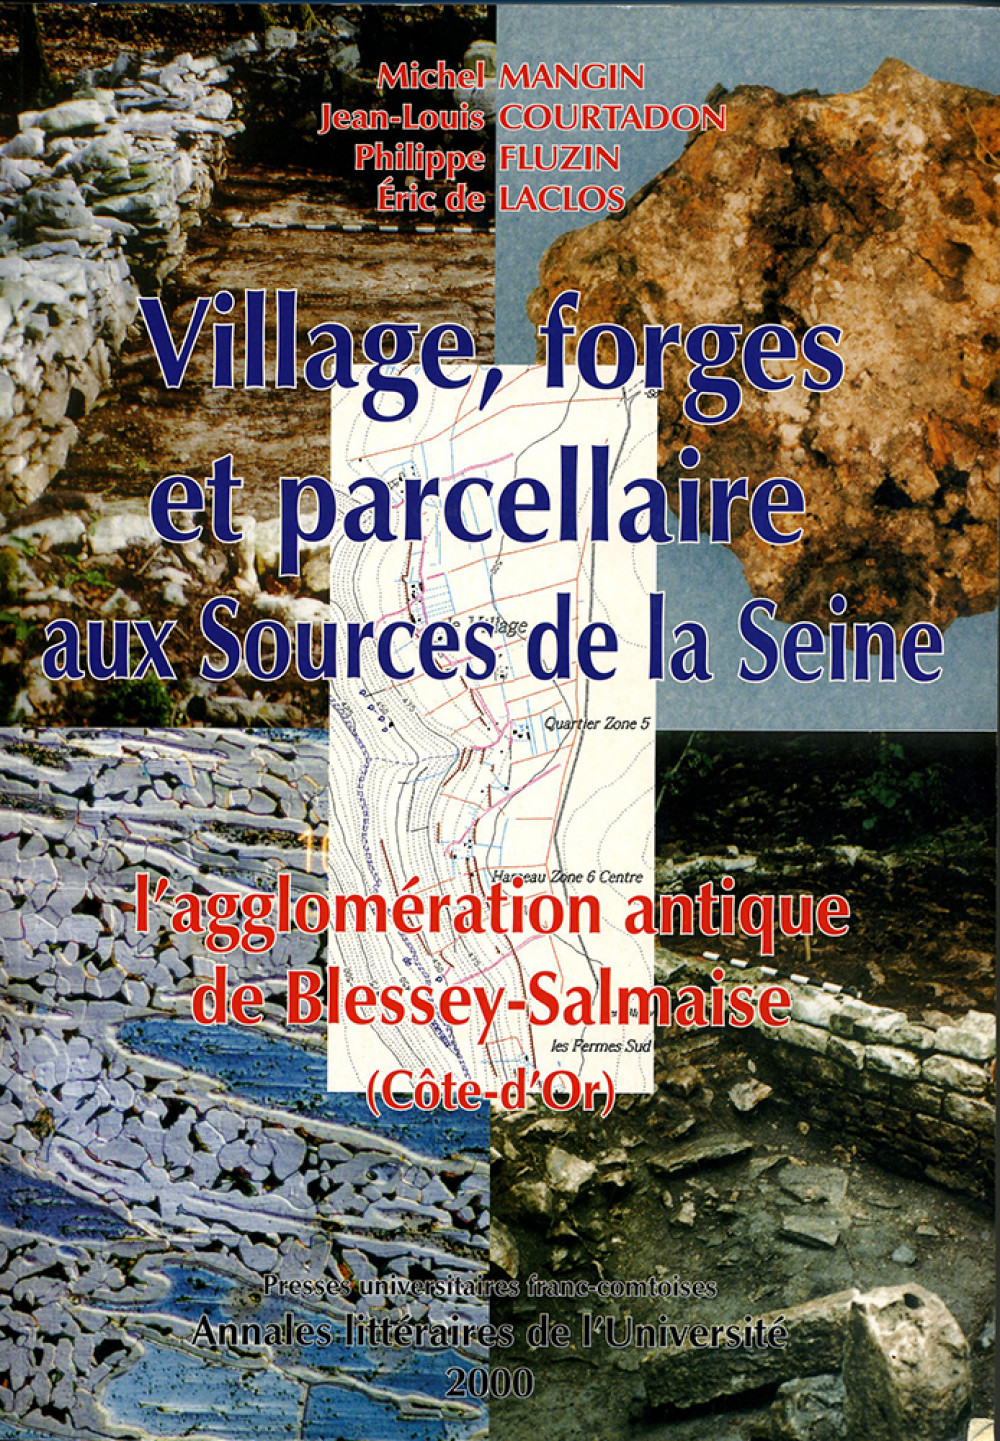 Village, forges et parcellaire aux sources de la Seine : l'agglomération gallo-romaine de Blessey-Salmaise (Côte d'Or)